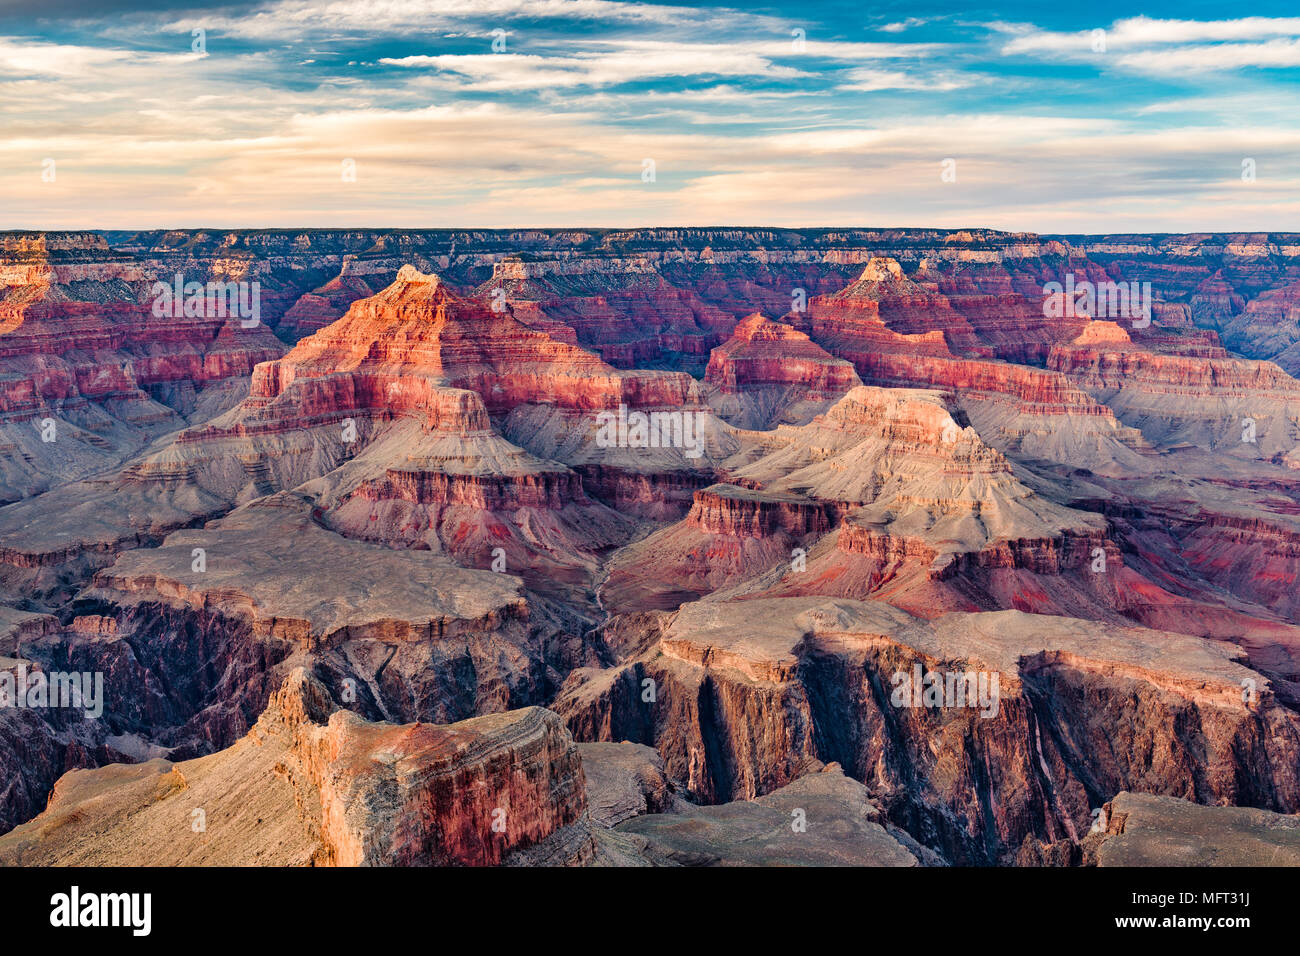 Grand Canyon, Arizona, USA at dawn from the south rim. - Stock Image